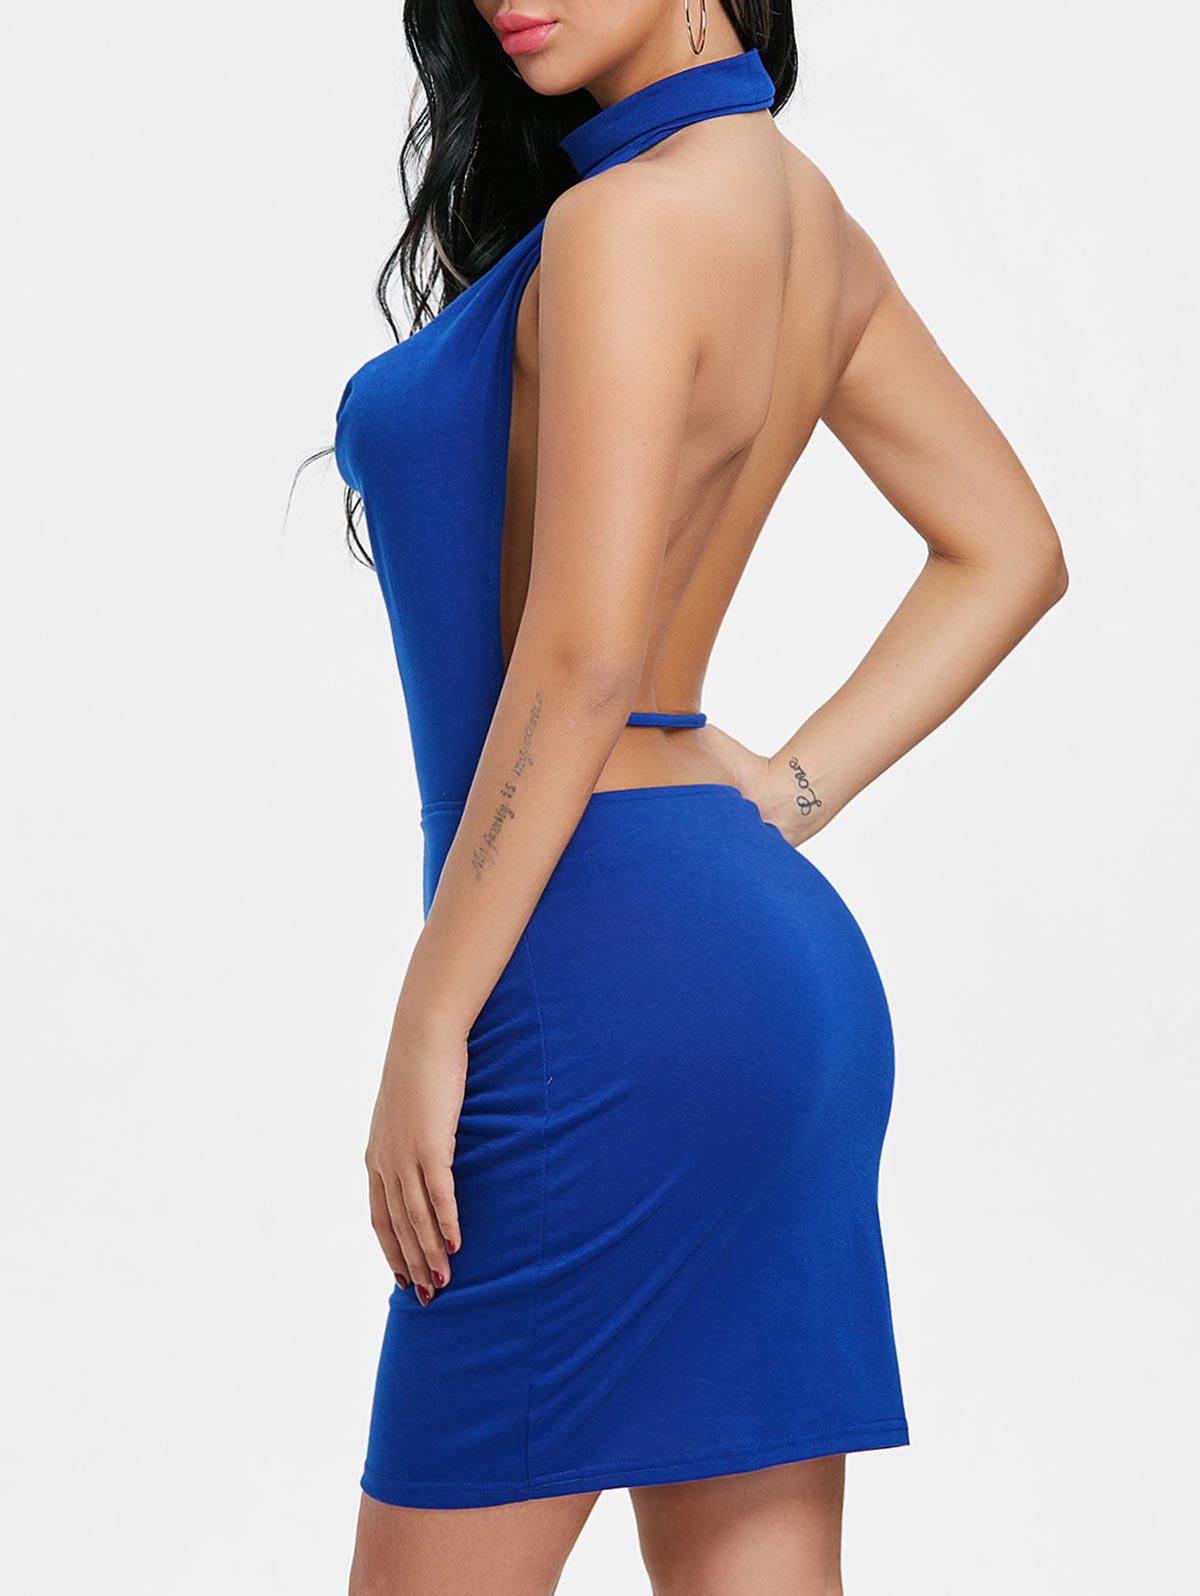 Backlesss Draped Halter Neck Dress with Choker - BLUE S